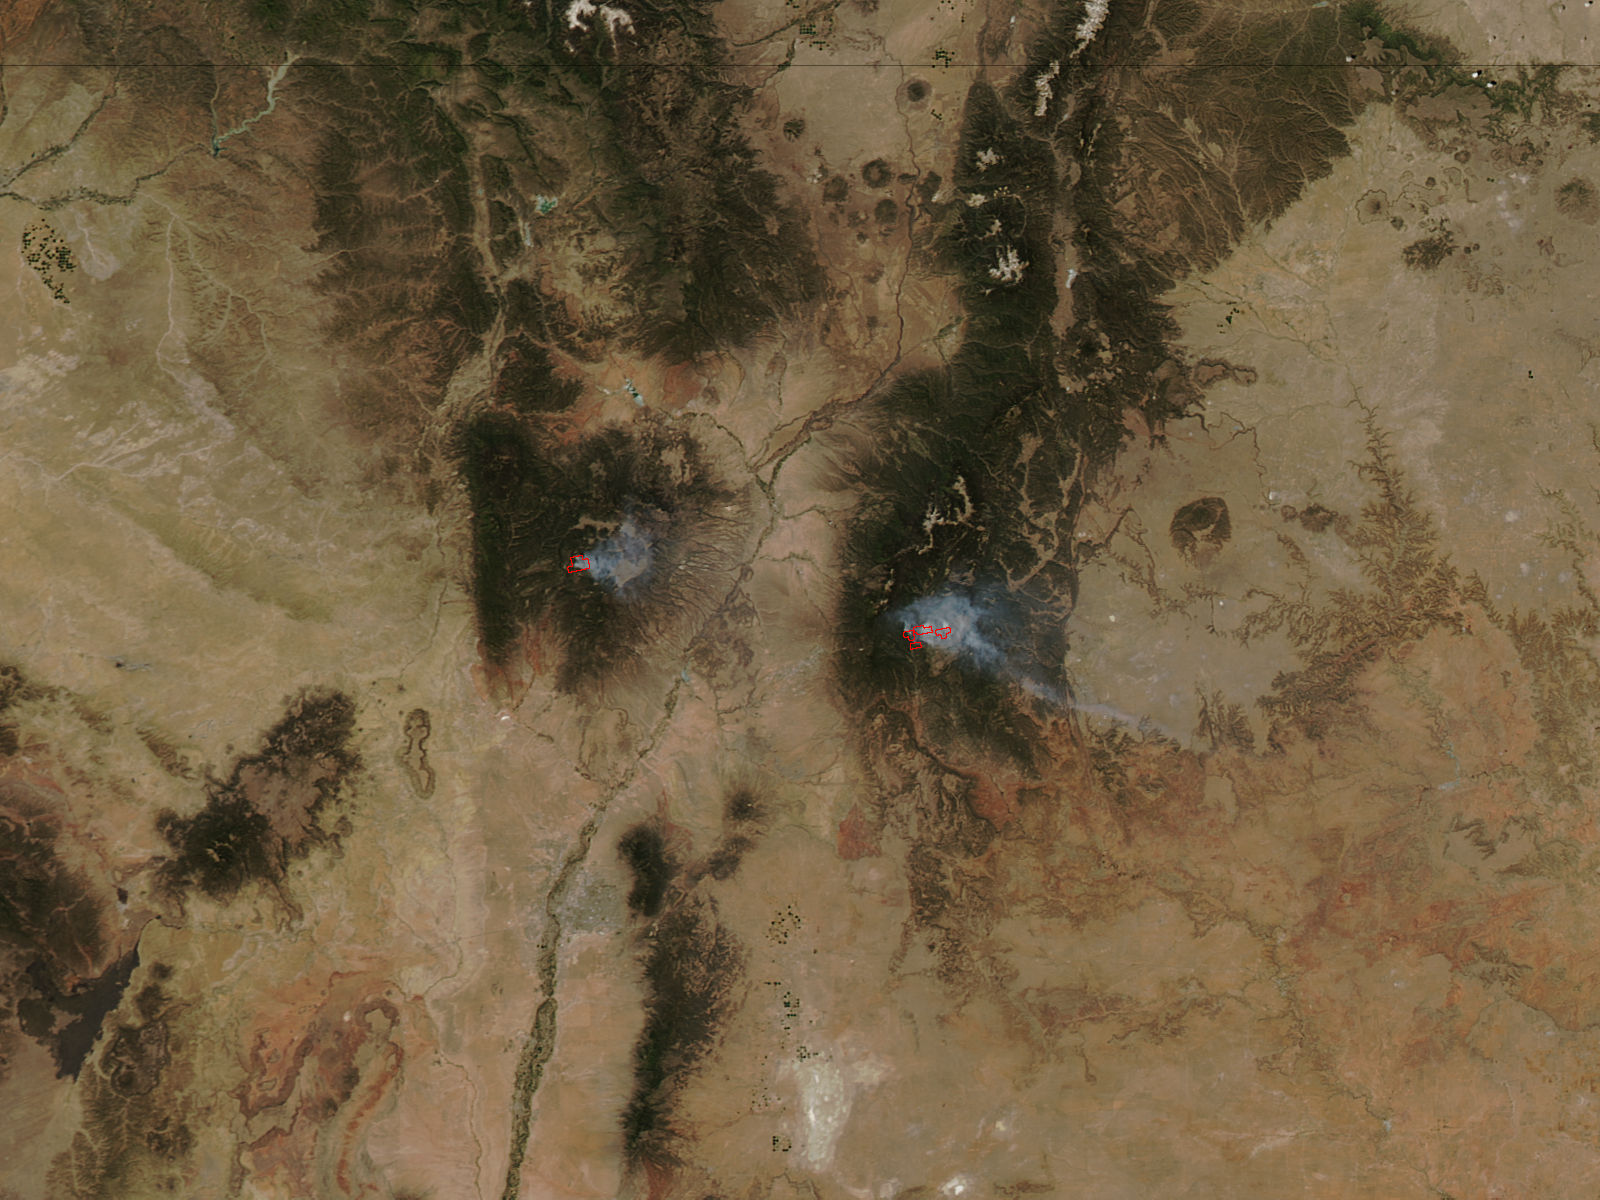 Thompson Ridge and Tres Lagunas Fires, New Mexico - related image preview